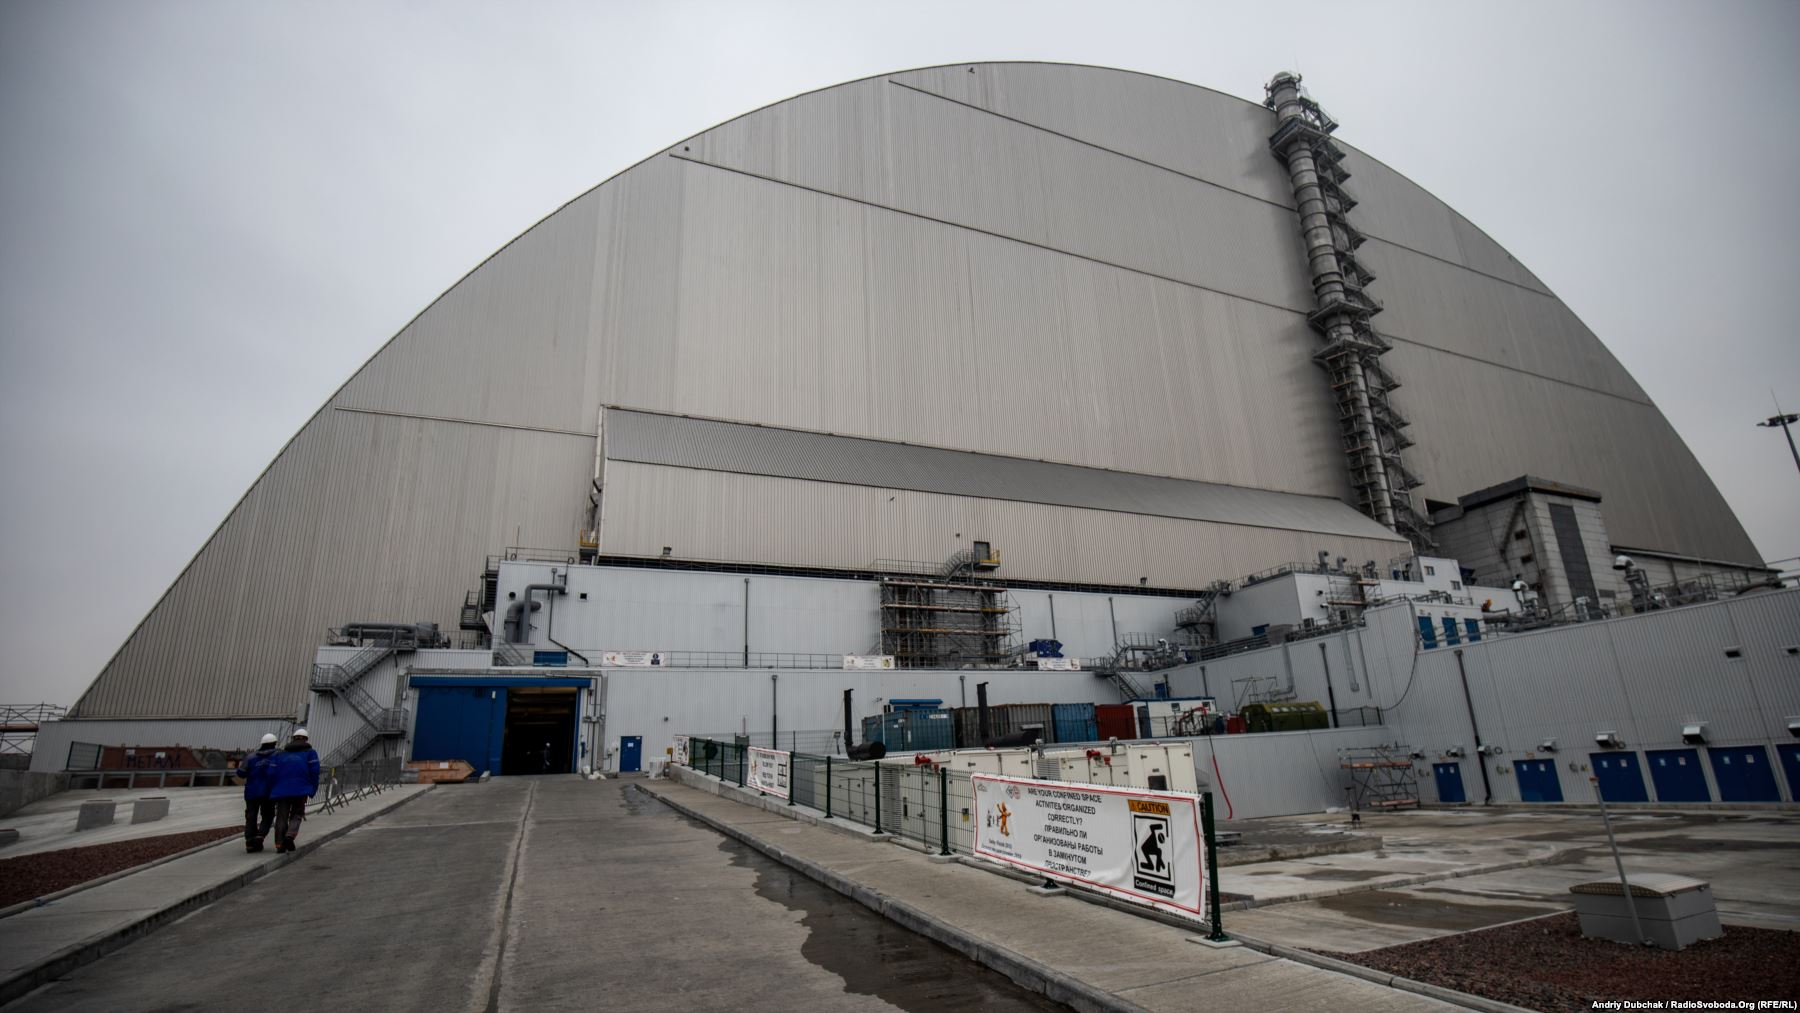 The New Safe Confinement (NSC) was designed to prevent further radiation leaks from Ukraine's stricken Chernobyl nuclear power plant. It took two weeks in November 2016 to slide the massive steel structure into position. At a height of 109 meters and a length of 257 meters, the shield is the world's largest movable metal structure. It covers the crumbling concrete sarcophagus that encased Chernobyl's reactor number four where an explosion in April 1986 spewed tons of radiation across Europe.